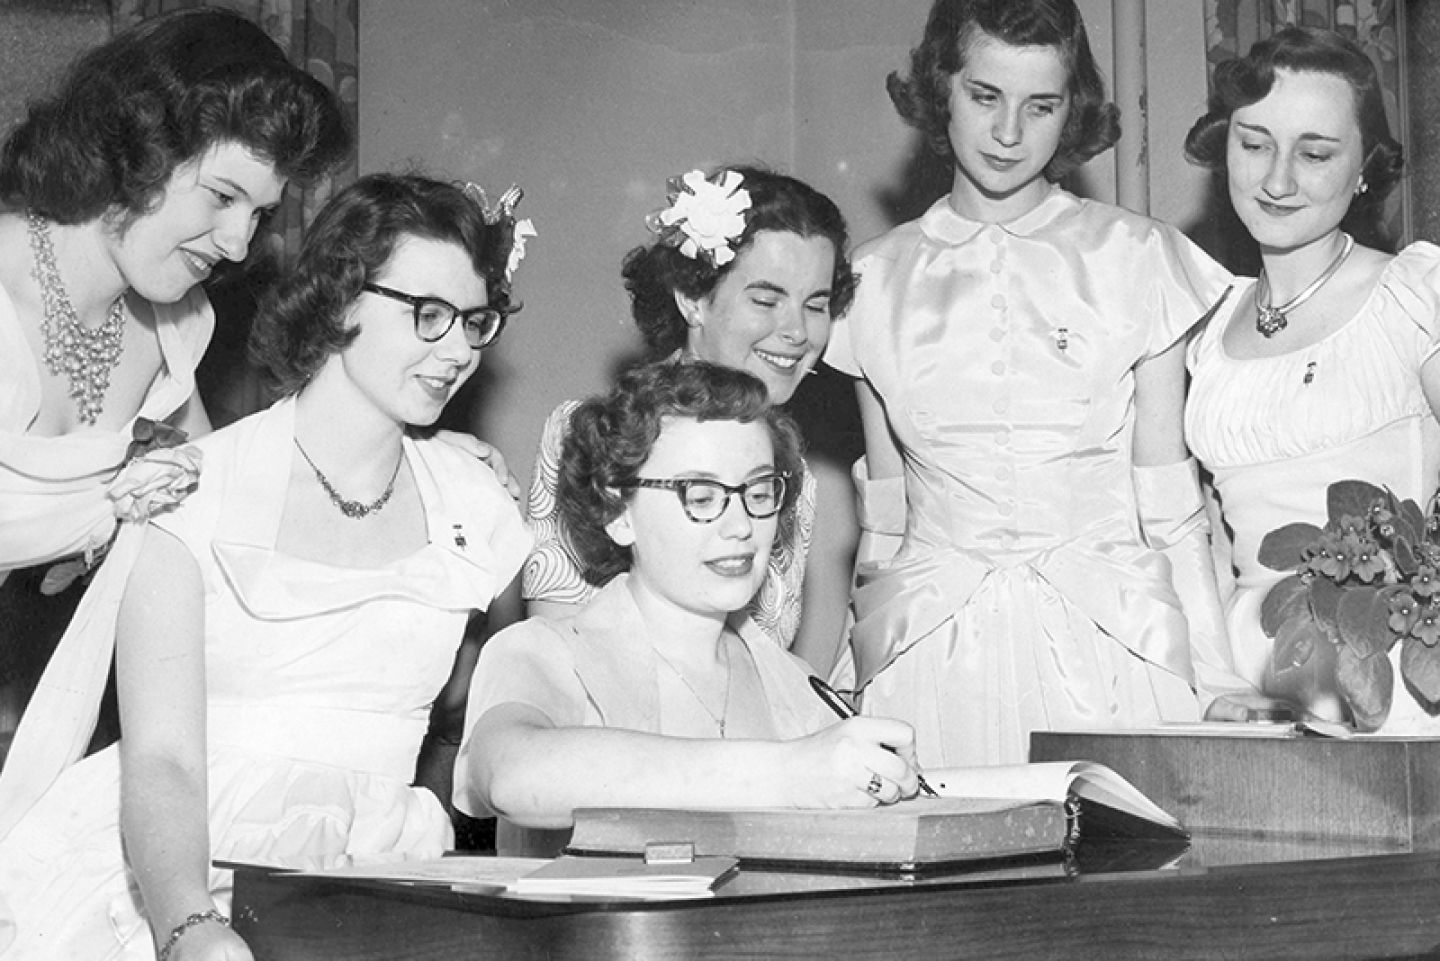 Historical image of St. Kate's students signing the Phi Beta Kappa book as new inductees